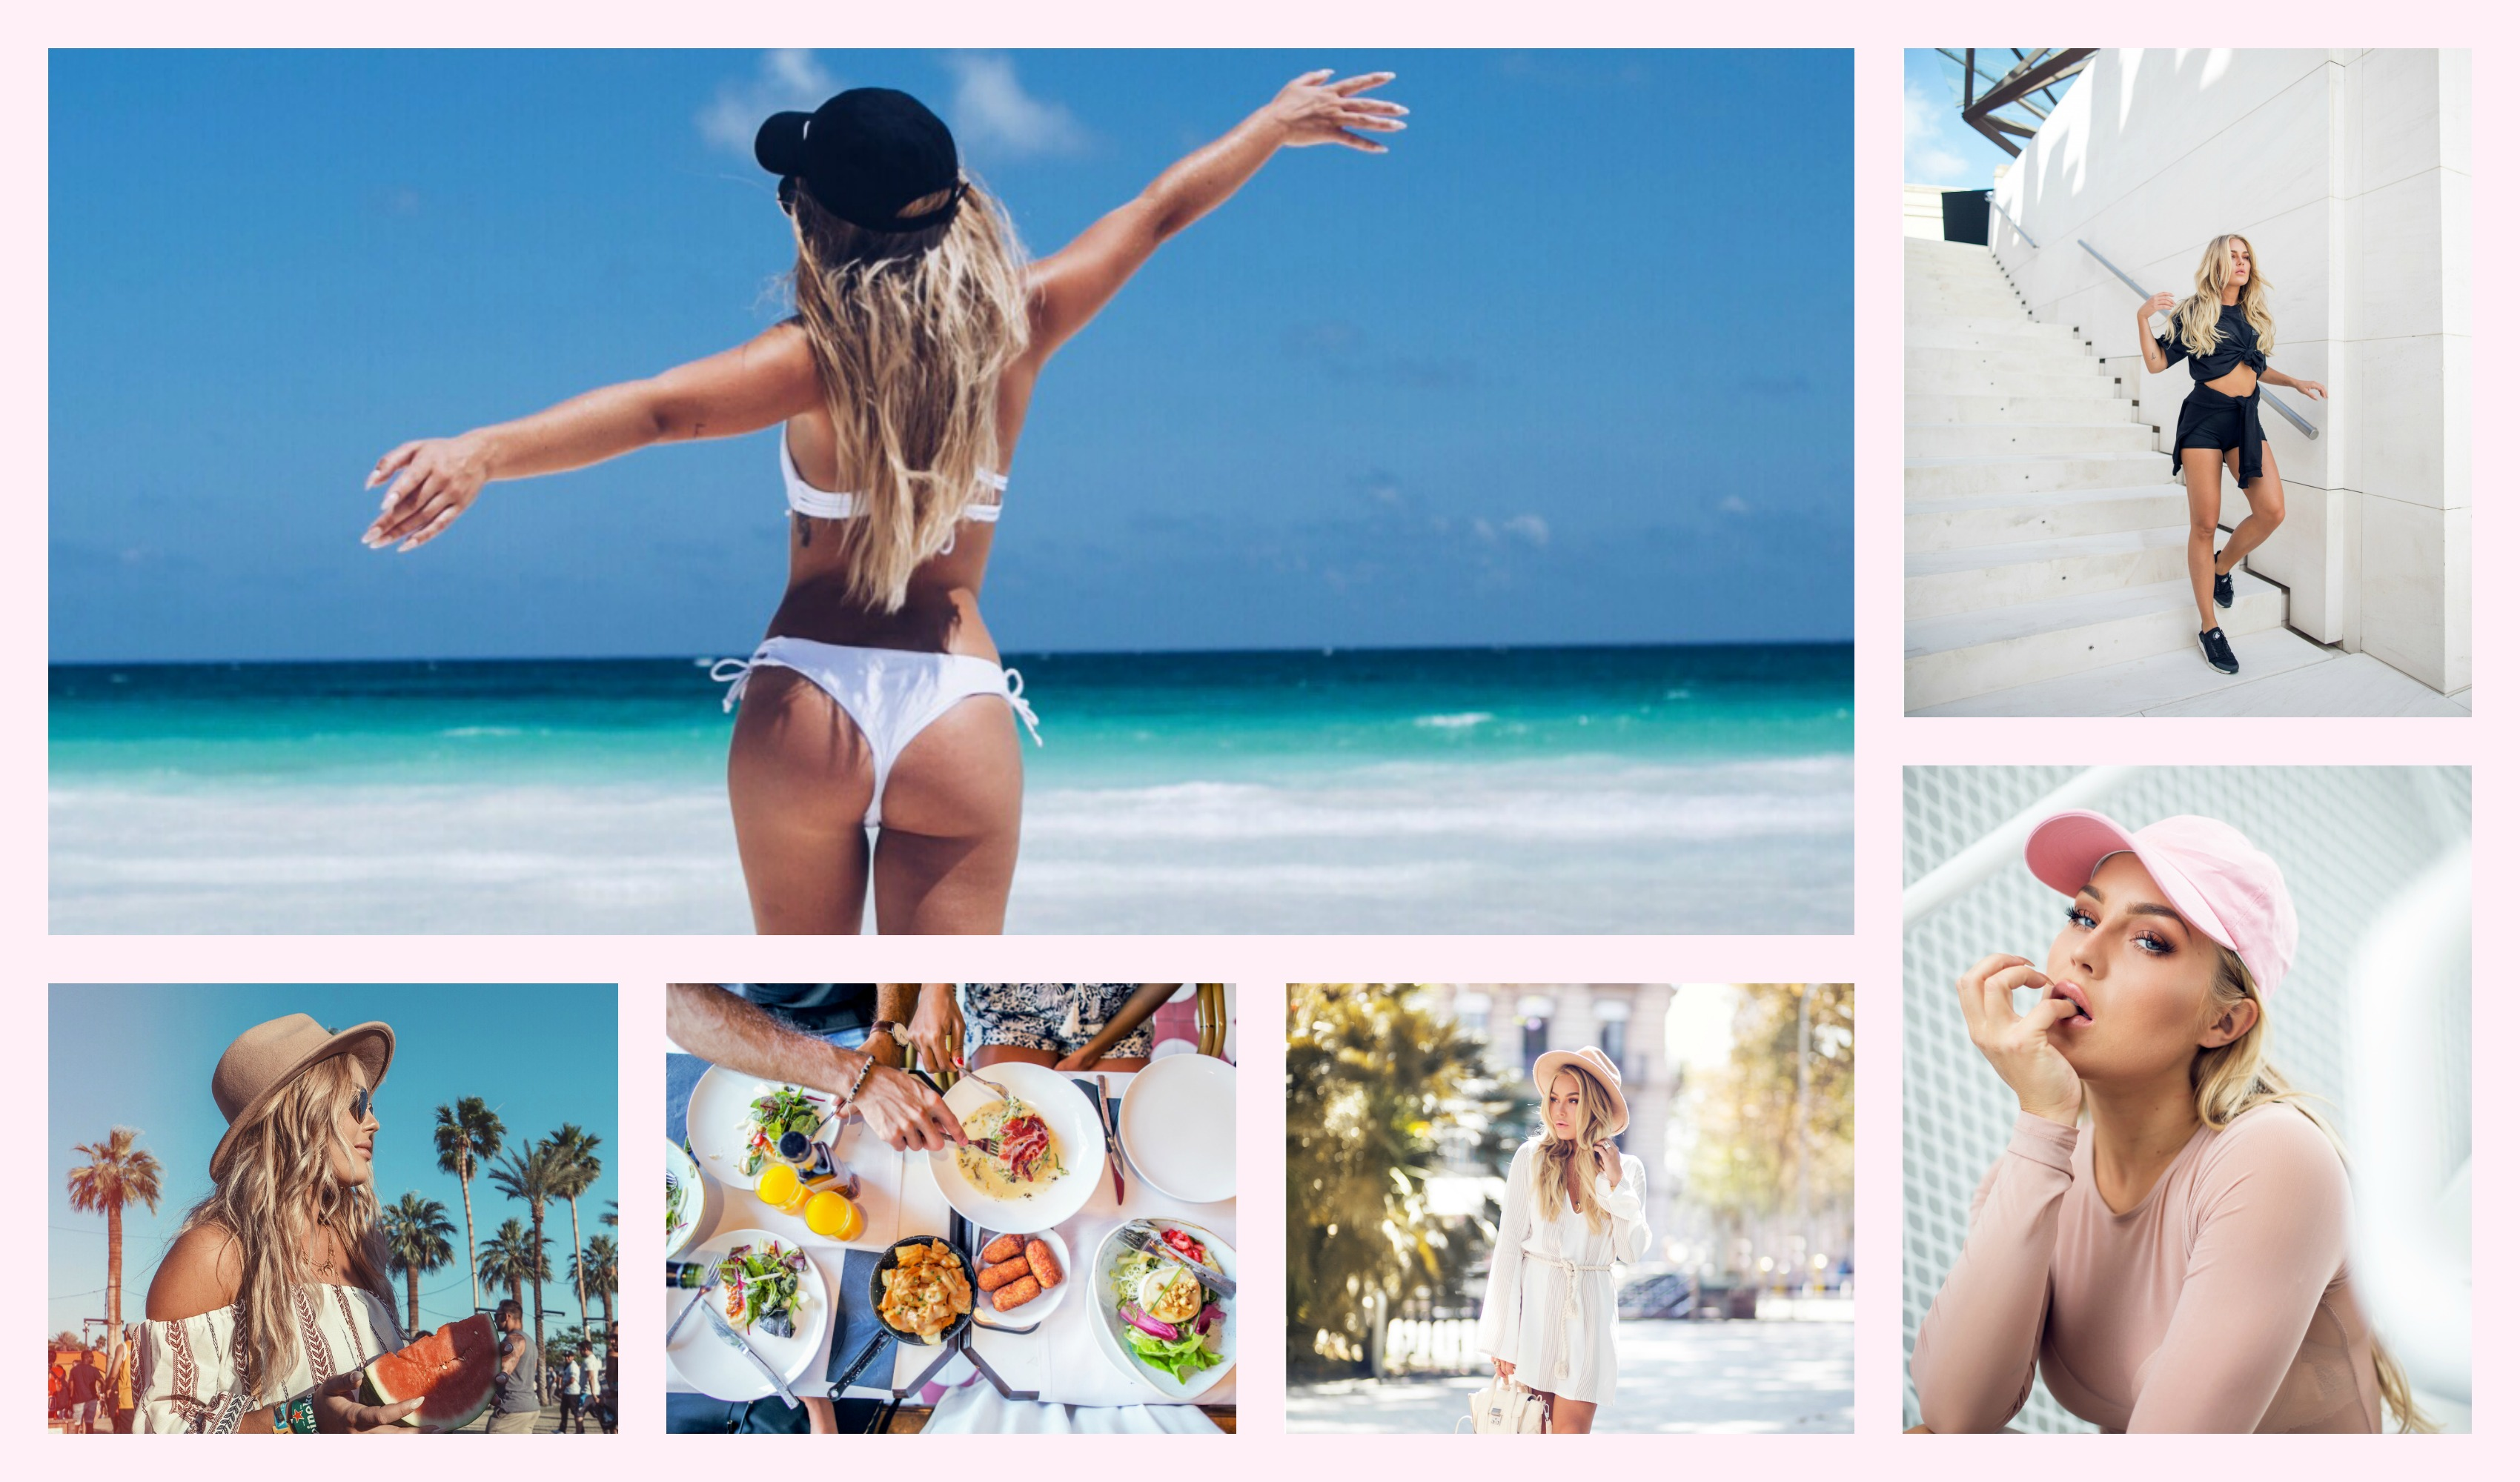 ANGELICA BLICK STYLE: A SWEDISH TRAVEL BLOGGER